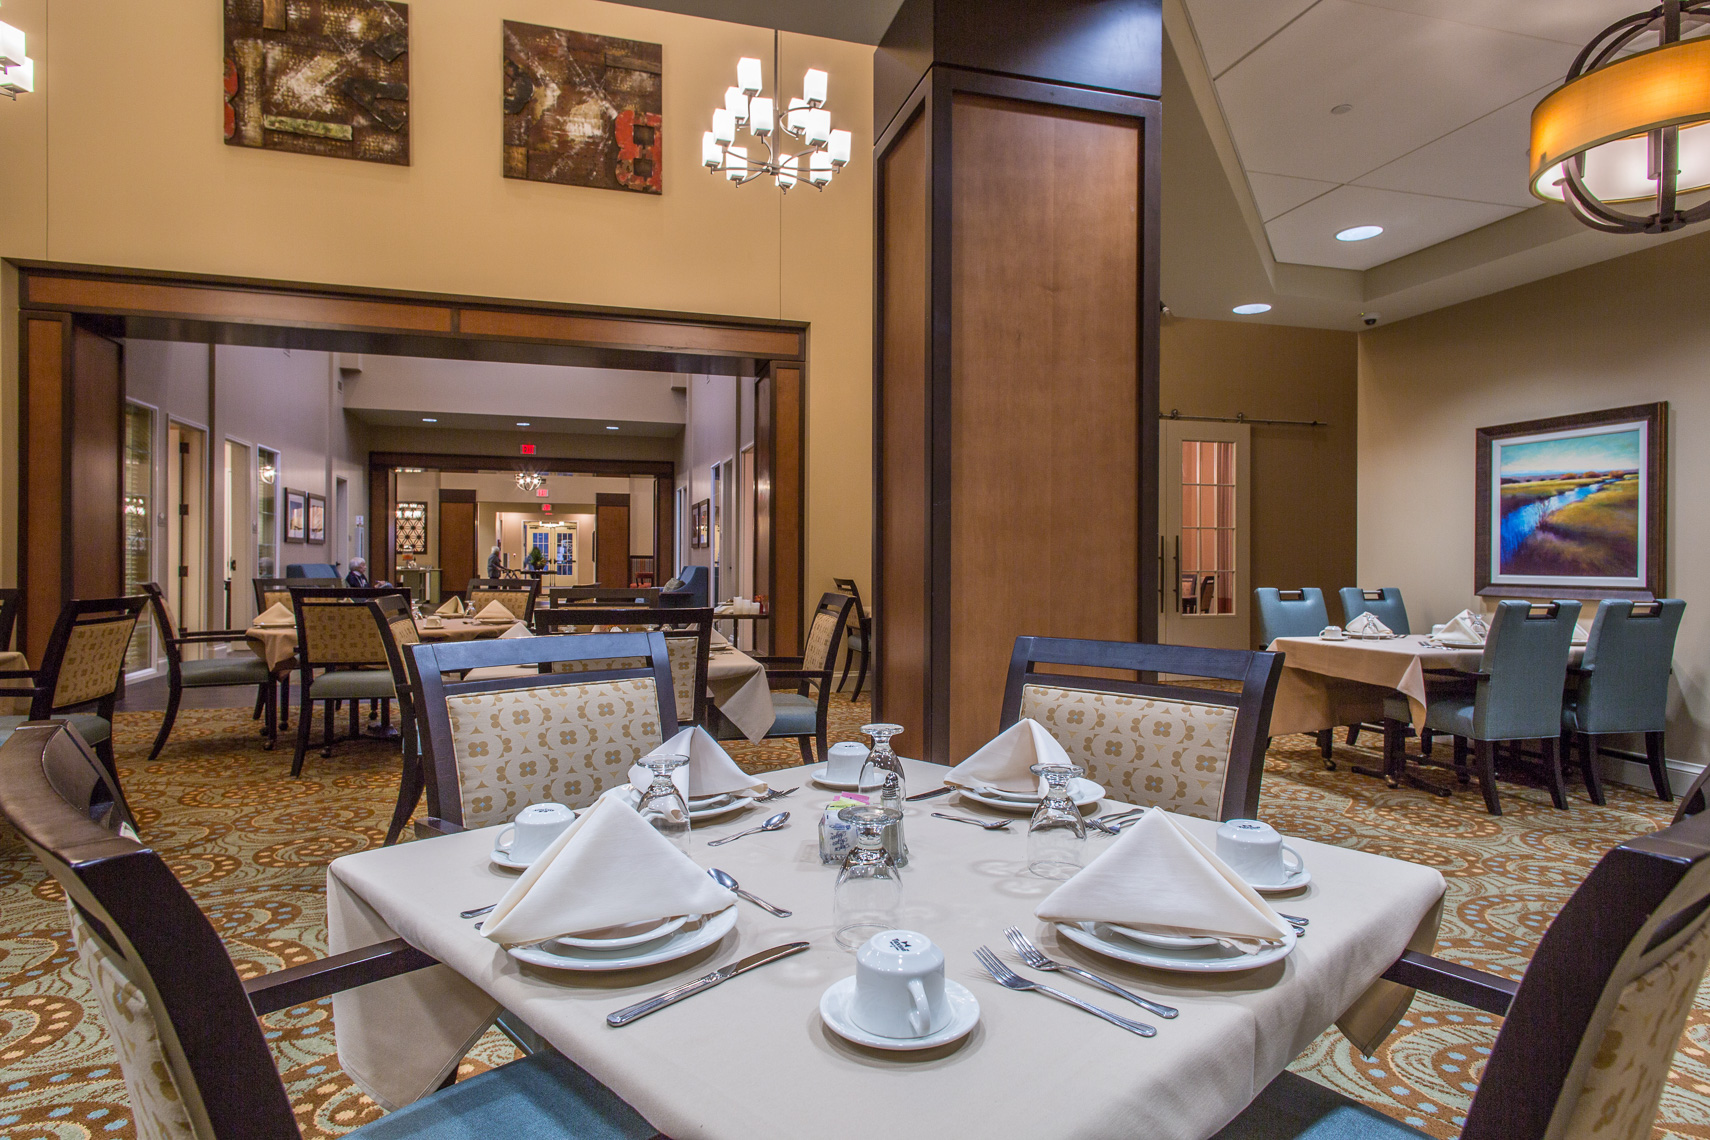 1210The Legacy at Falcon Point, Katy,Texas, Dining room